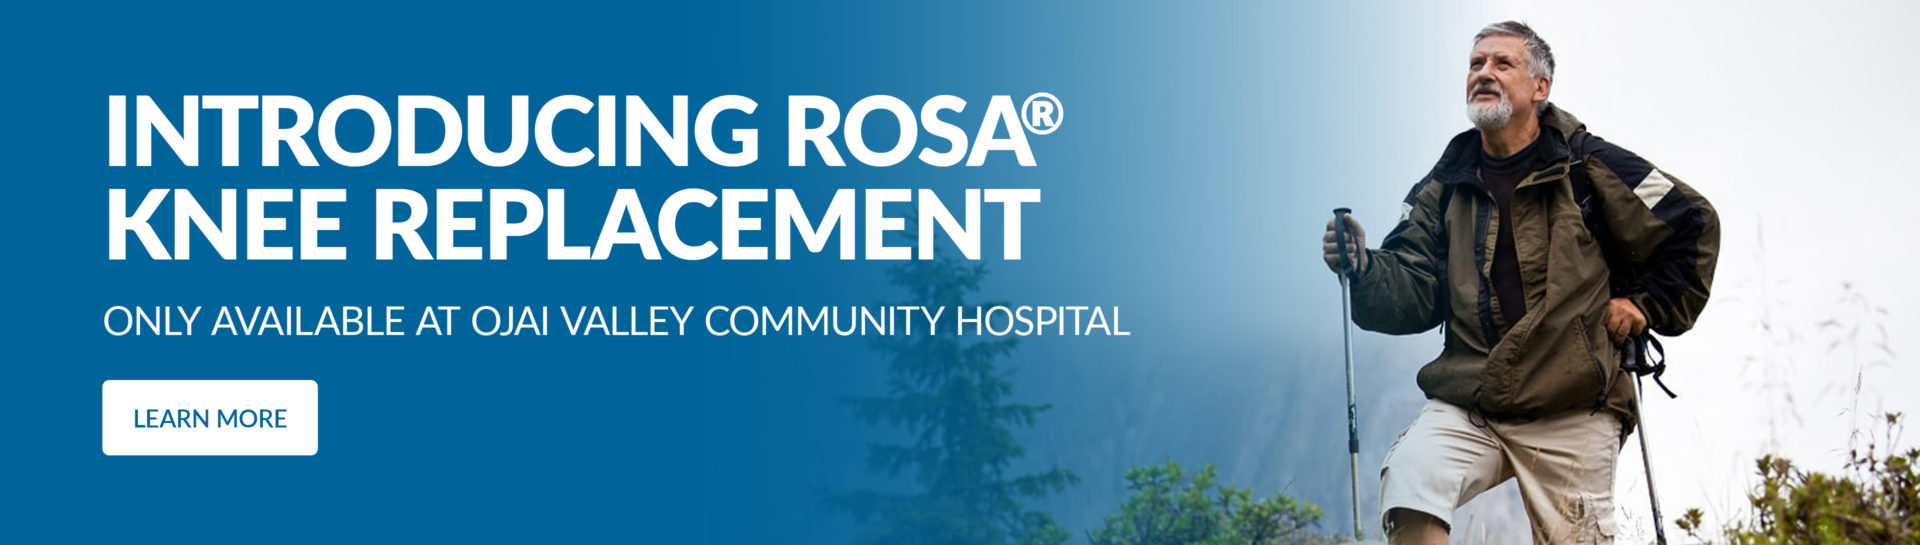 Introducing ROSA Knee Replacement only available at Ojai Valley Community Hospital